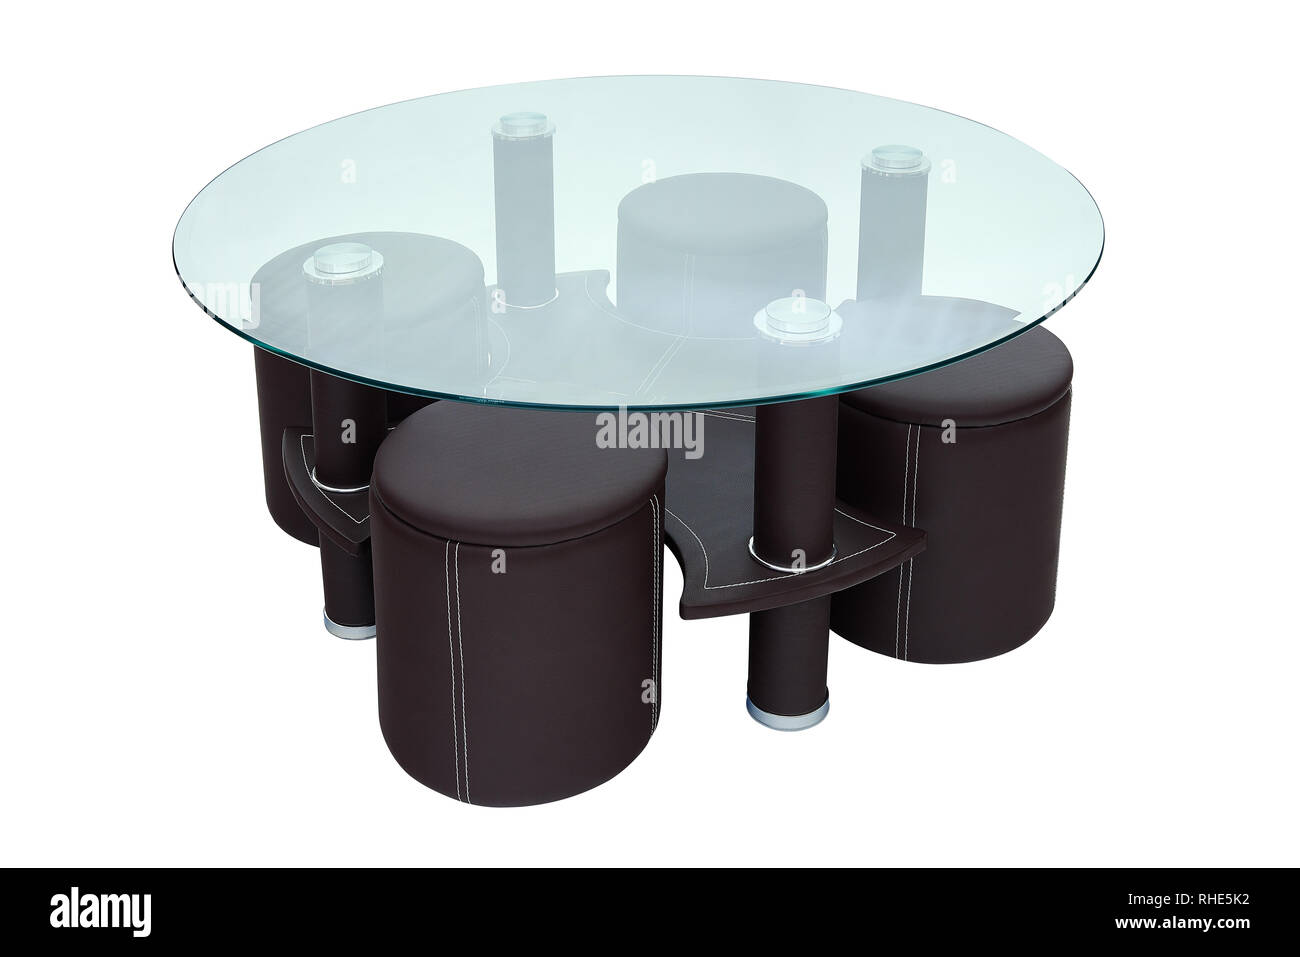 Table Basse Ronde Avec 4 Tabourets Metal And Wood Stool Photos Metal And Wood Stool Images Alamy